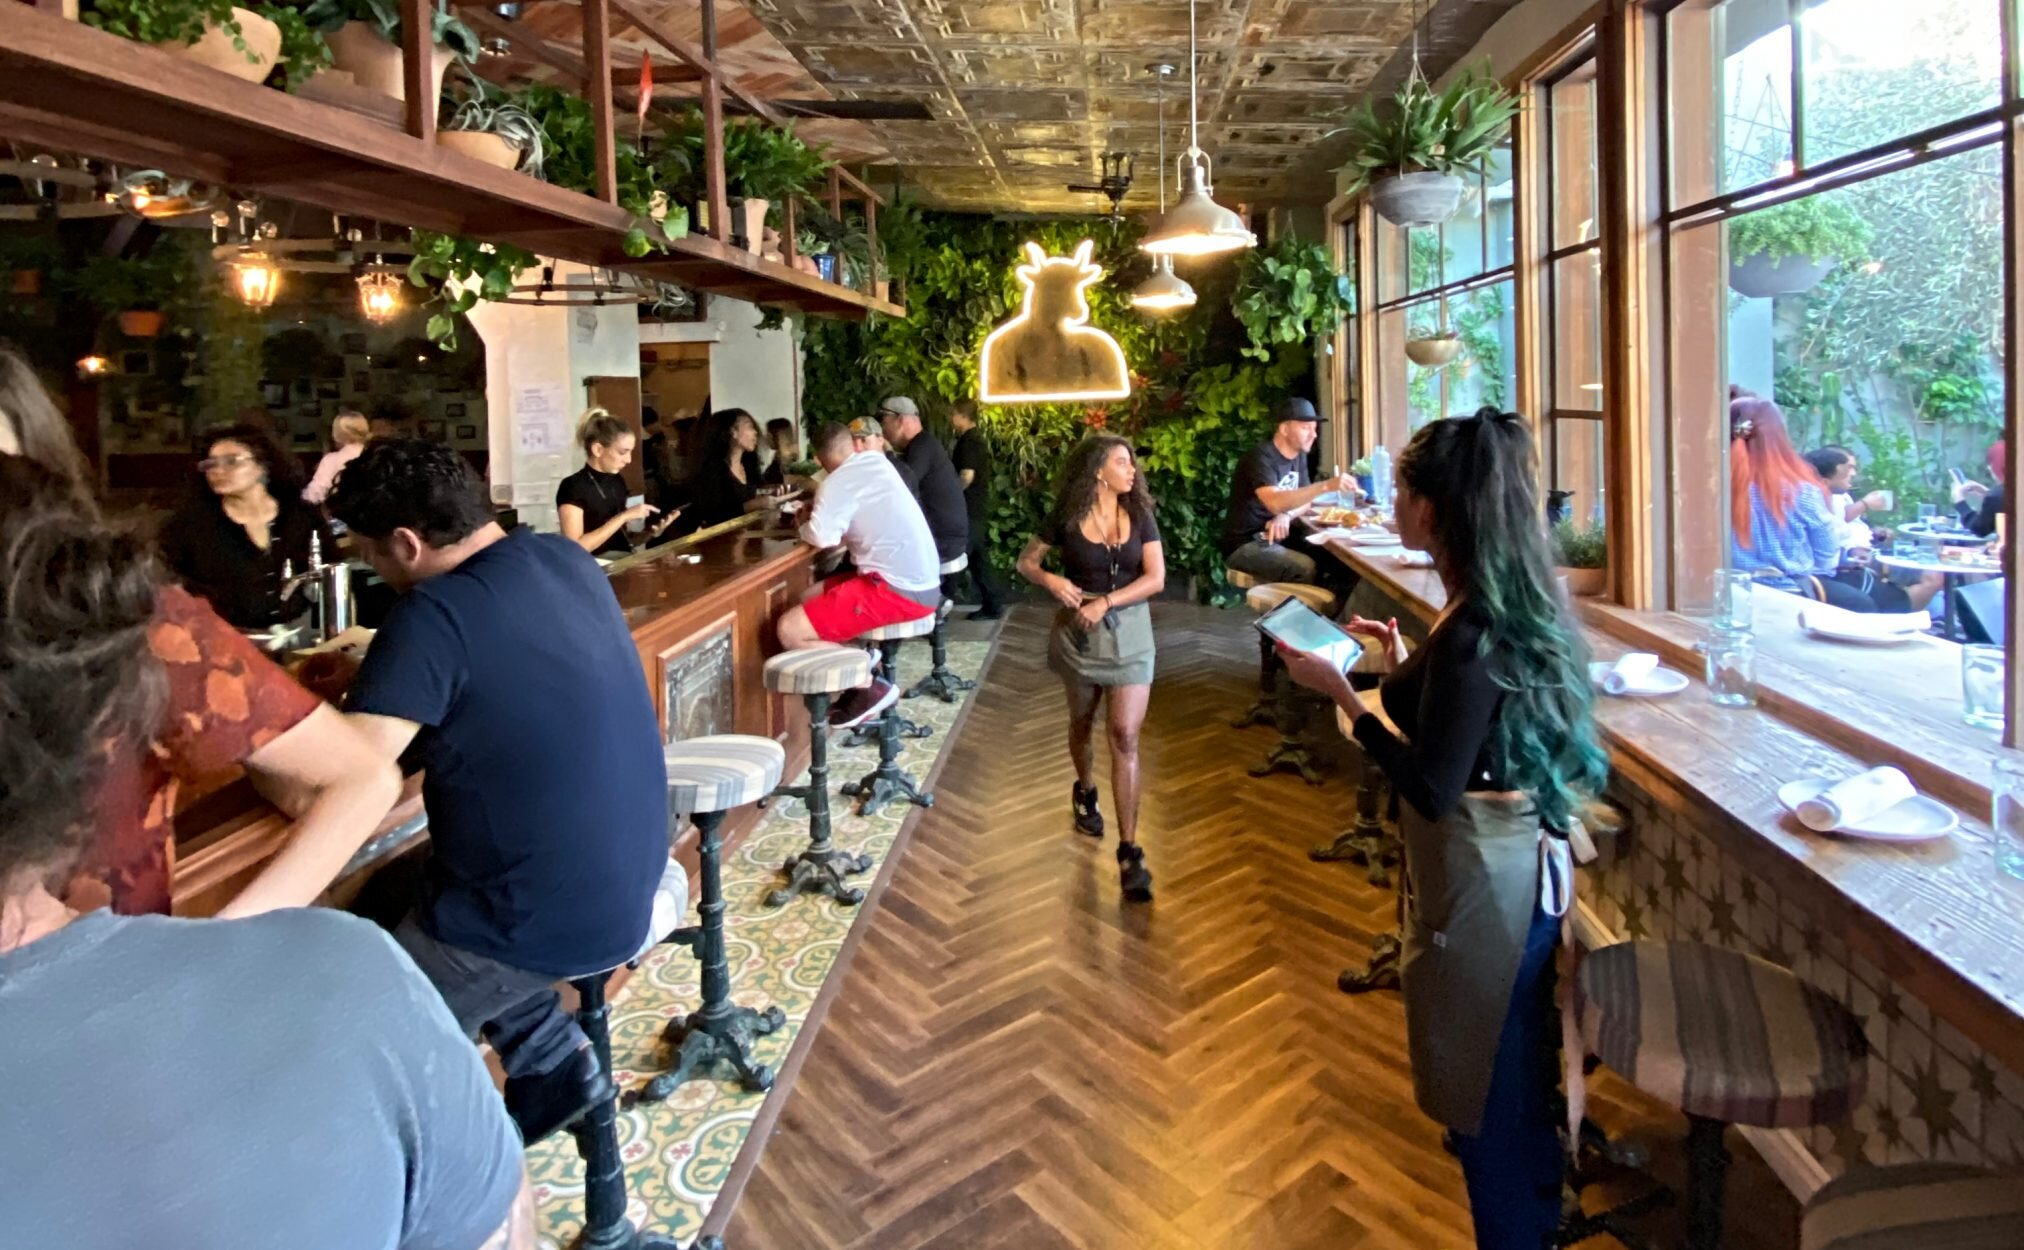 Here's how Lowell Cafe is able to make the cannabis restaurant business model work.